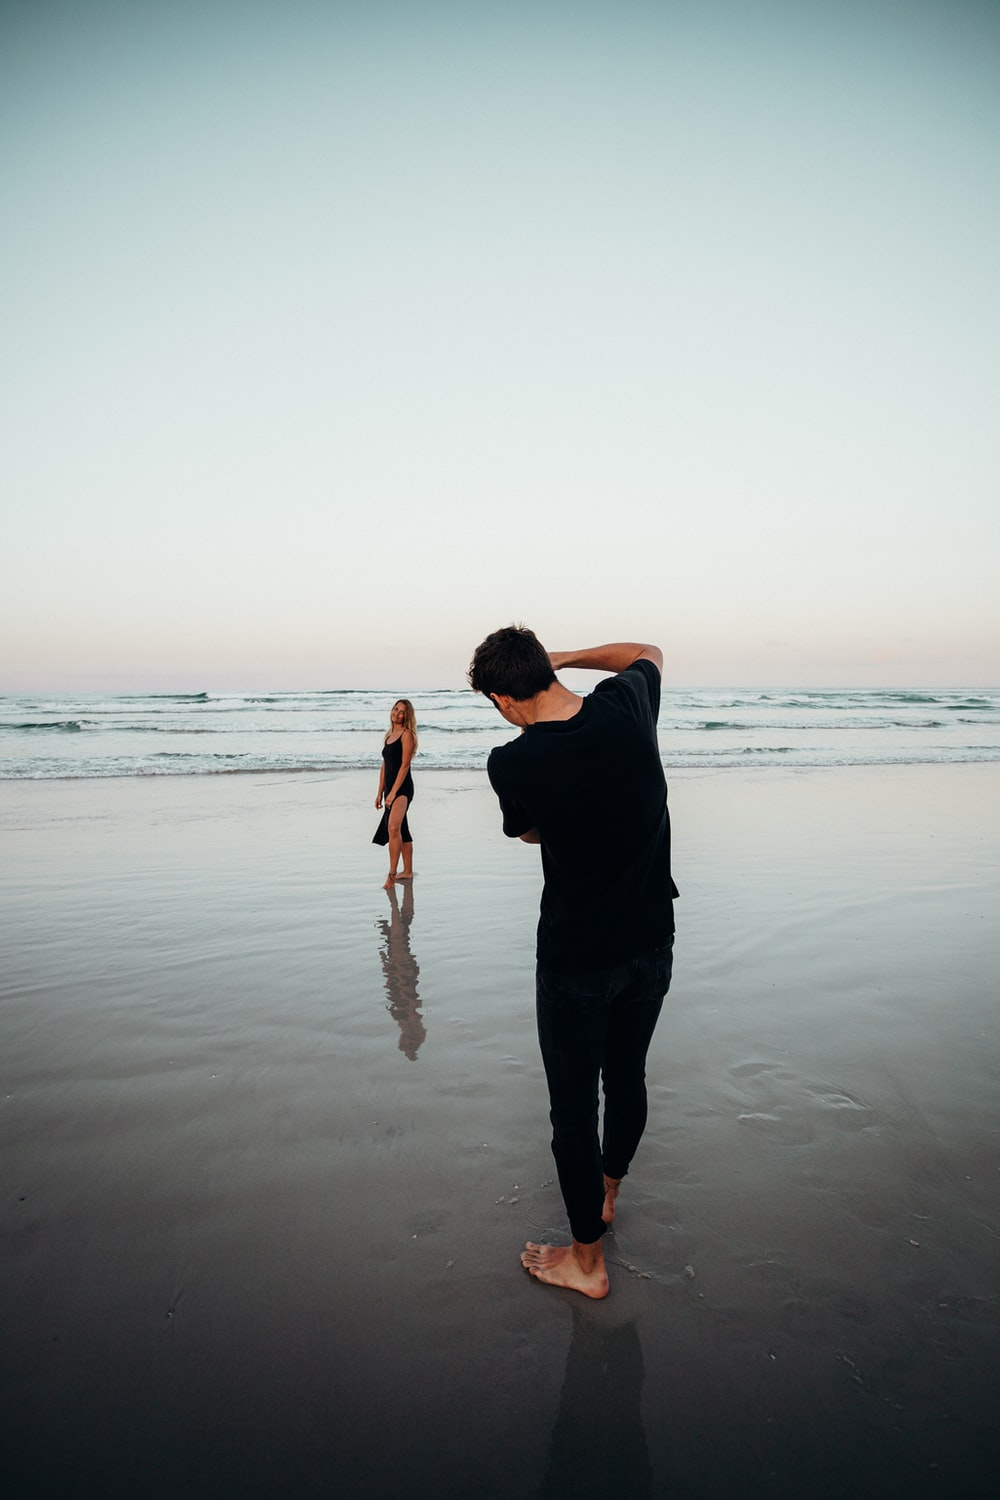 man in black shirt and pants standing on seashore during sunset